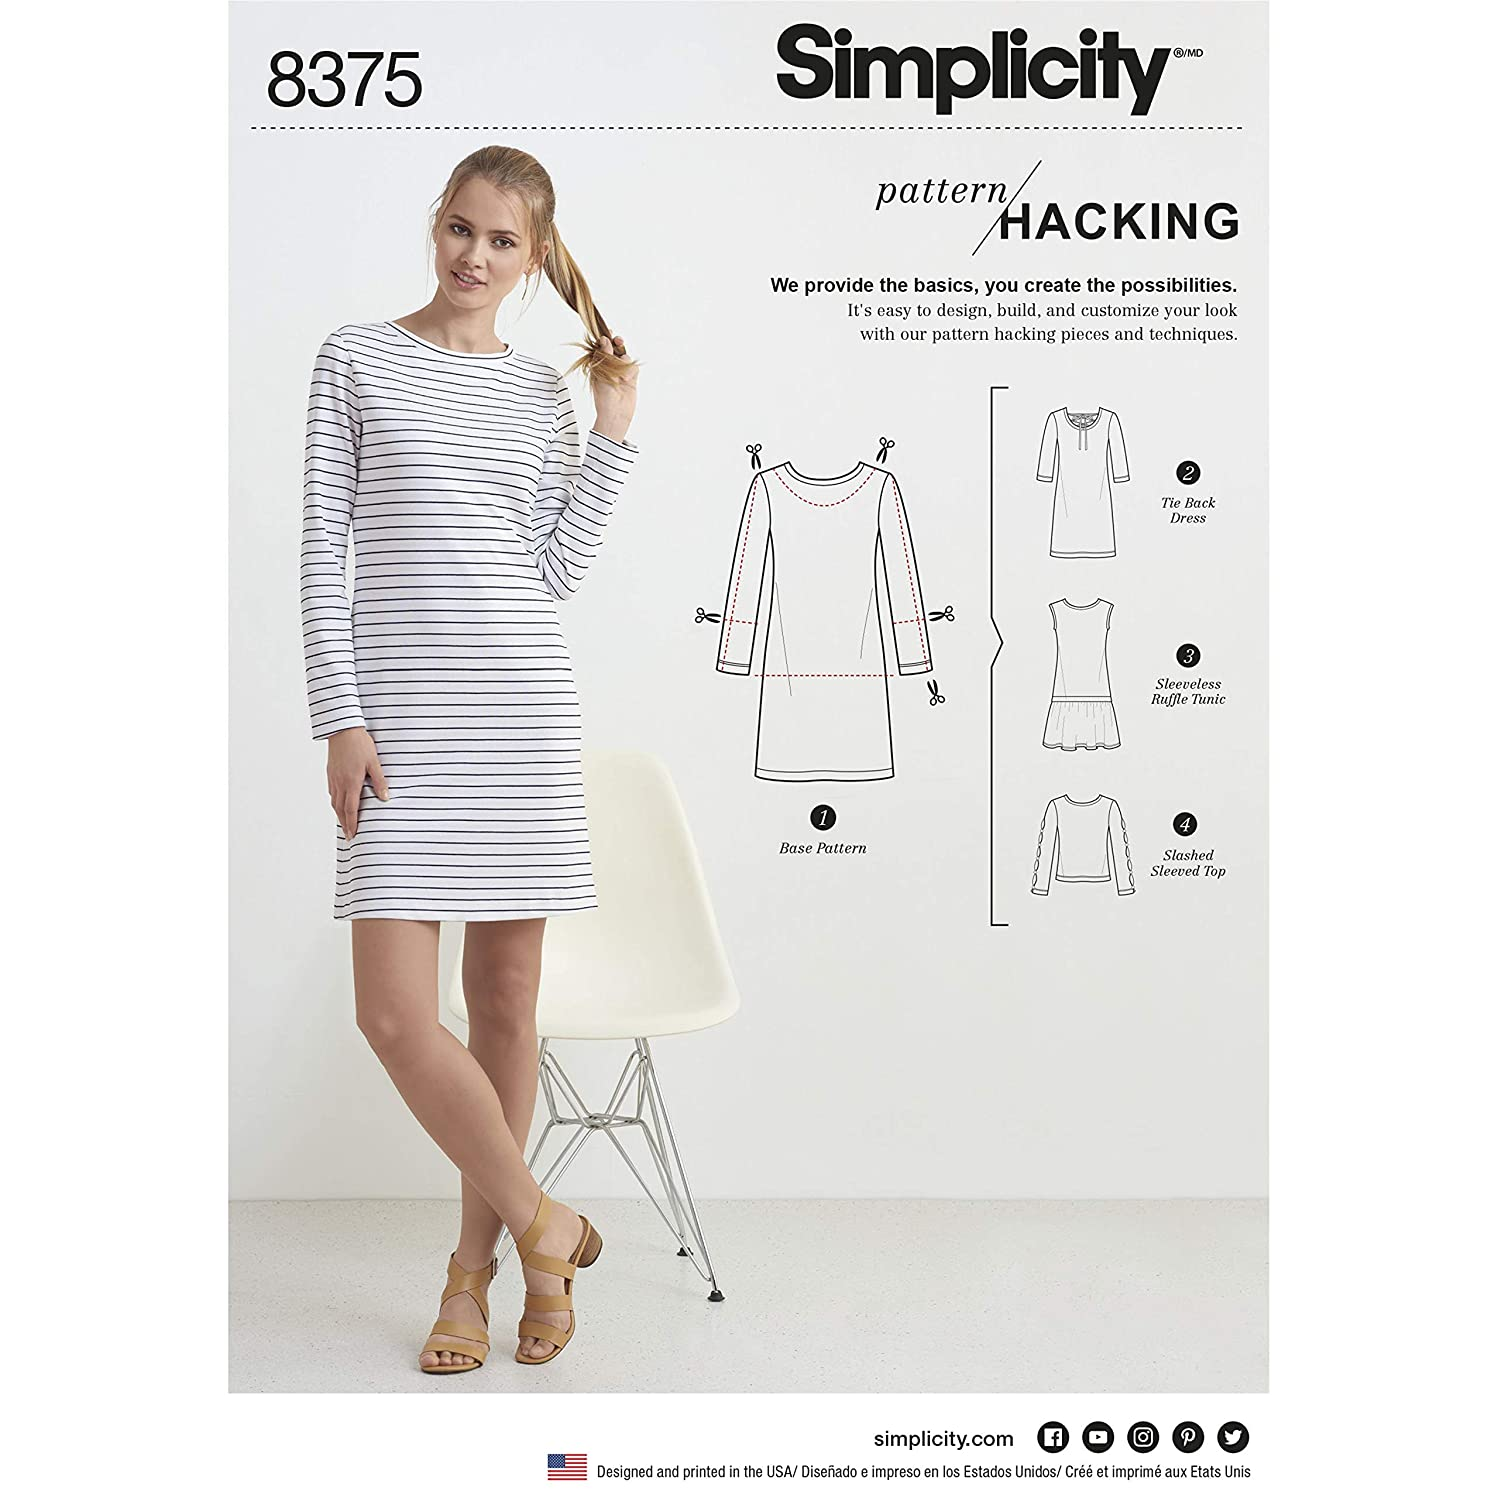 Simplicity Sewing Pattern D0946 / 8545 - Misses Knit Dress or Top with Multiple Pattern Pieces for Design Hacking, A (XXS-XS-S-M-L-XL-XXL)